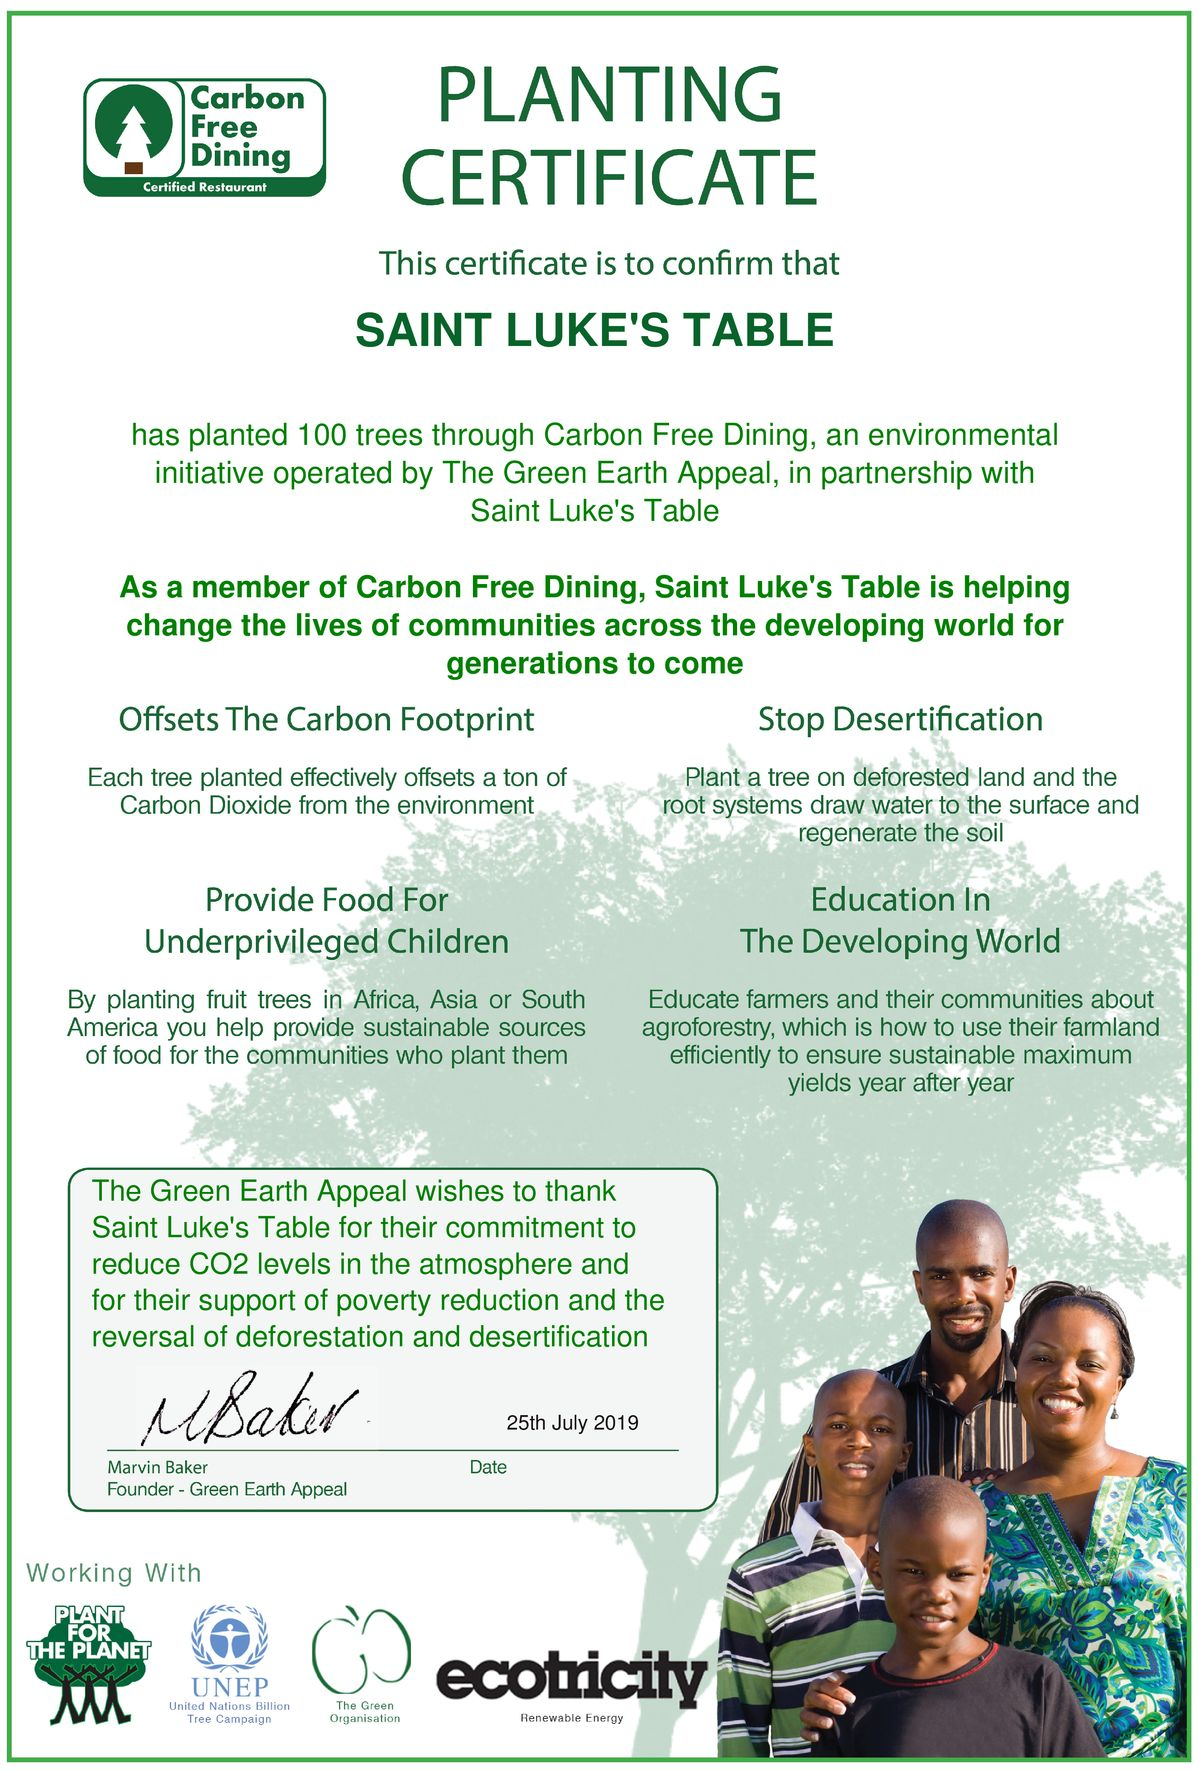 St. Luke's Table